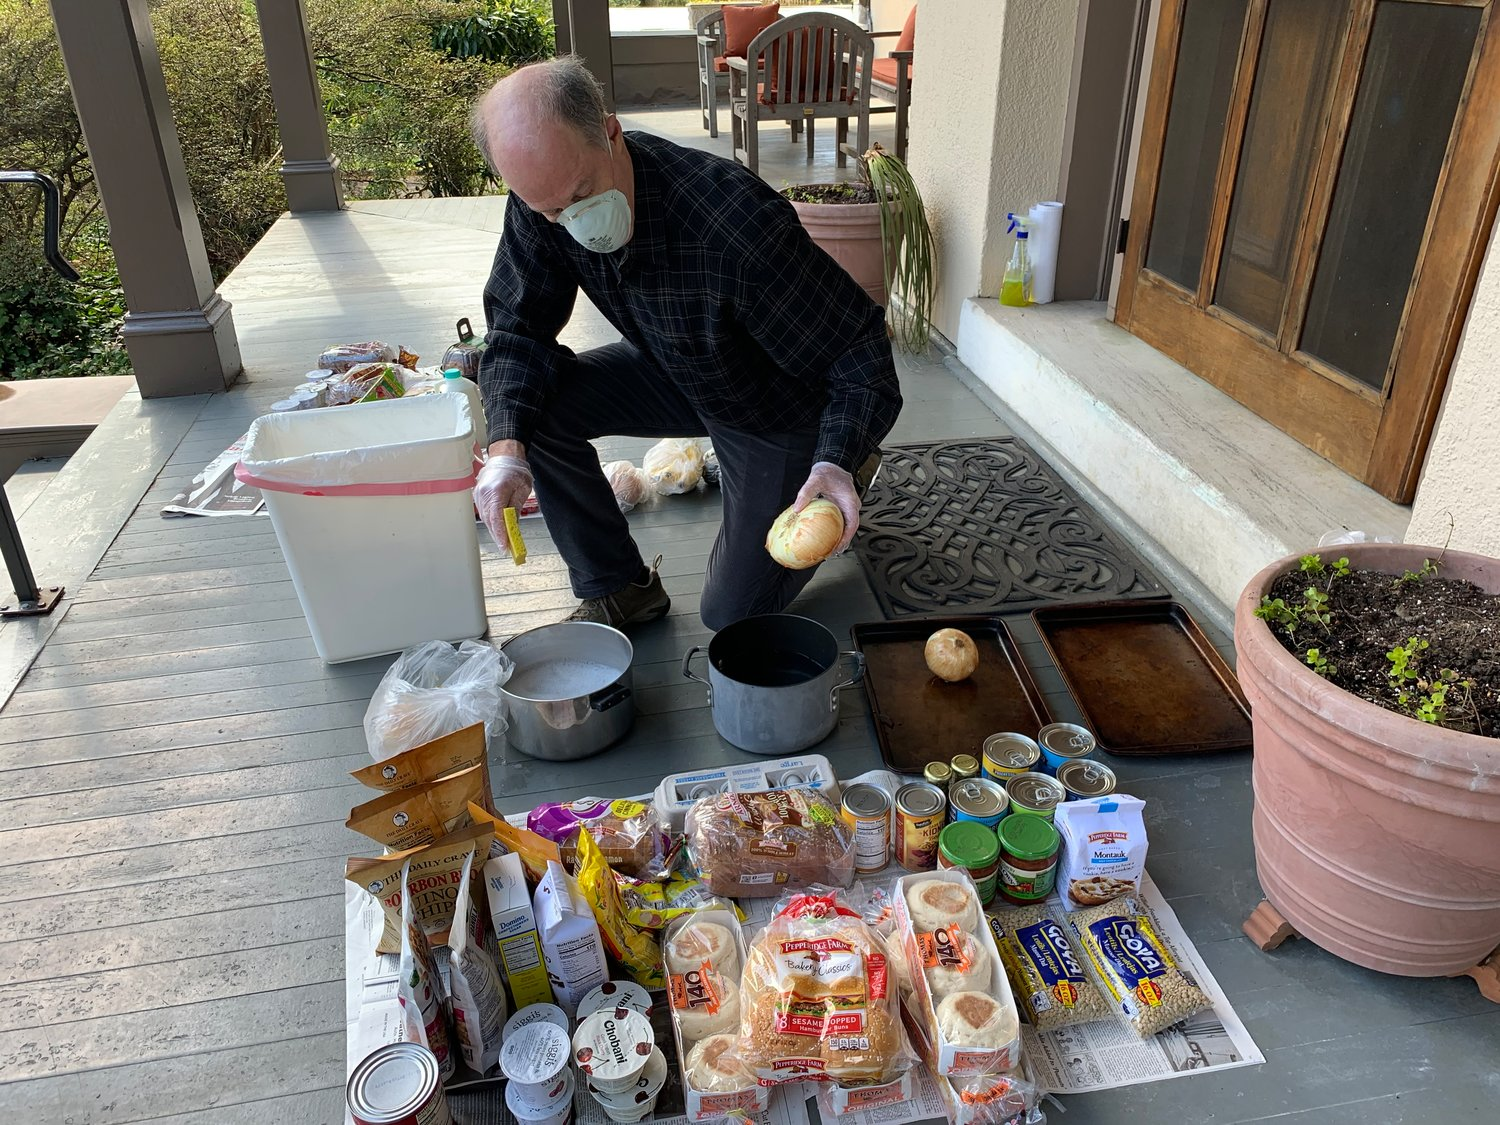 20210318 132739 2021 03 17   PHOTO   'Discovering Chestnut Hill' – Covid Collecting cleaning food.